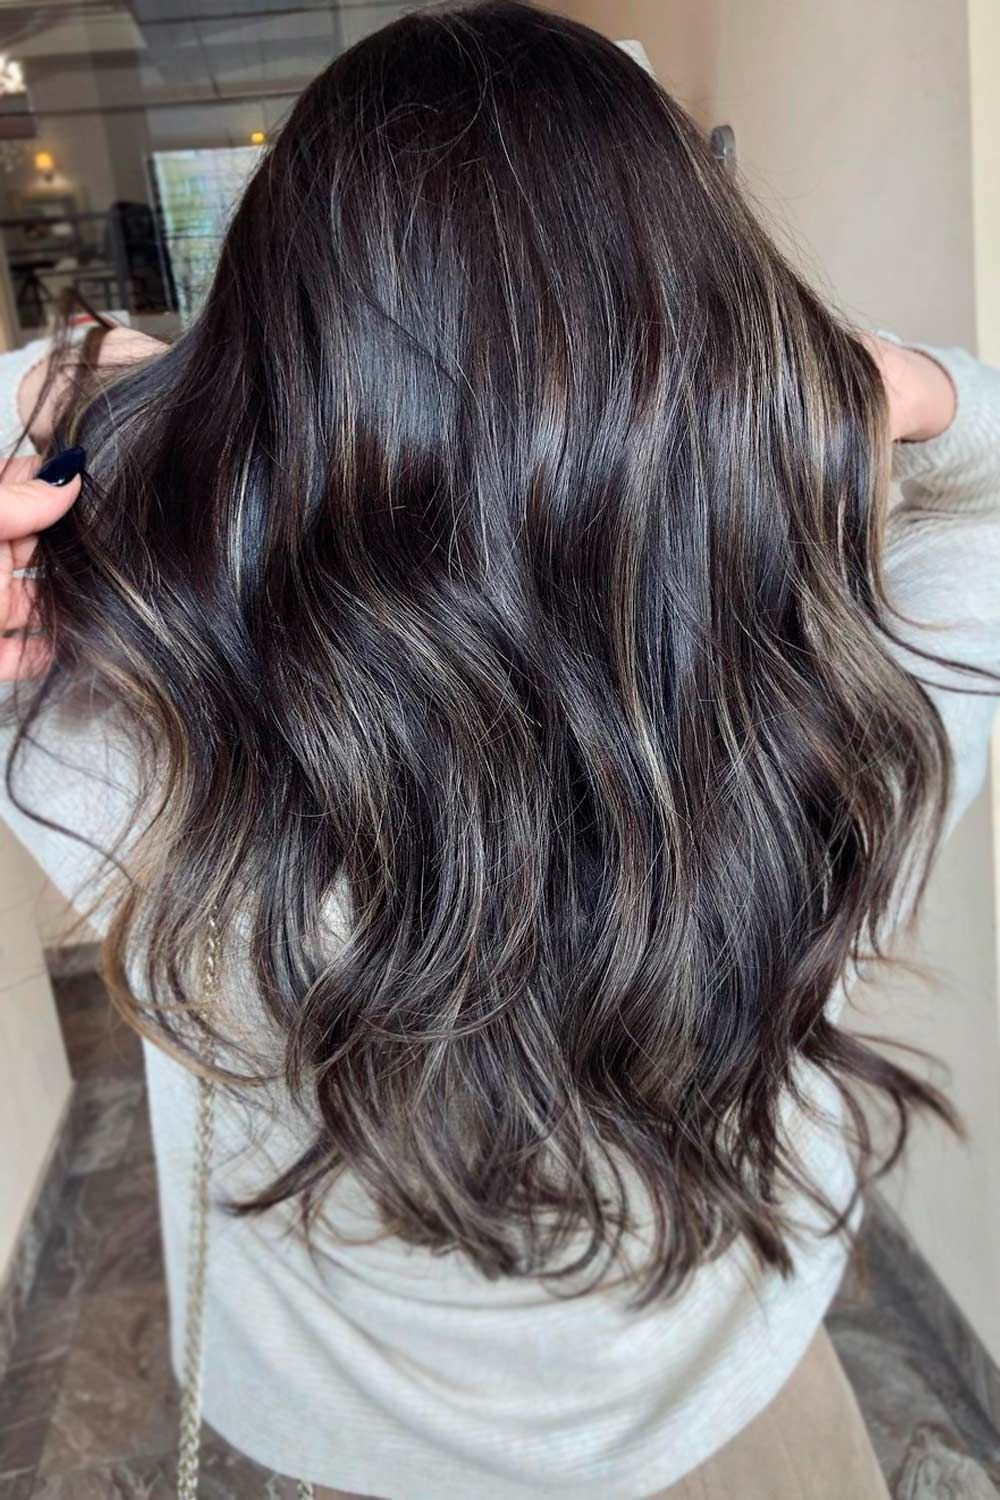 50+🤩 Sassy Looks With Ash Brown Hair | LoveHairStyles.com